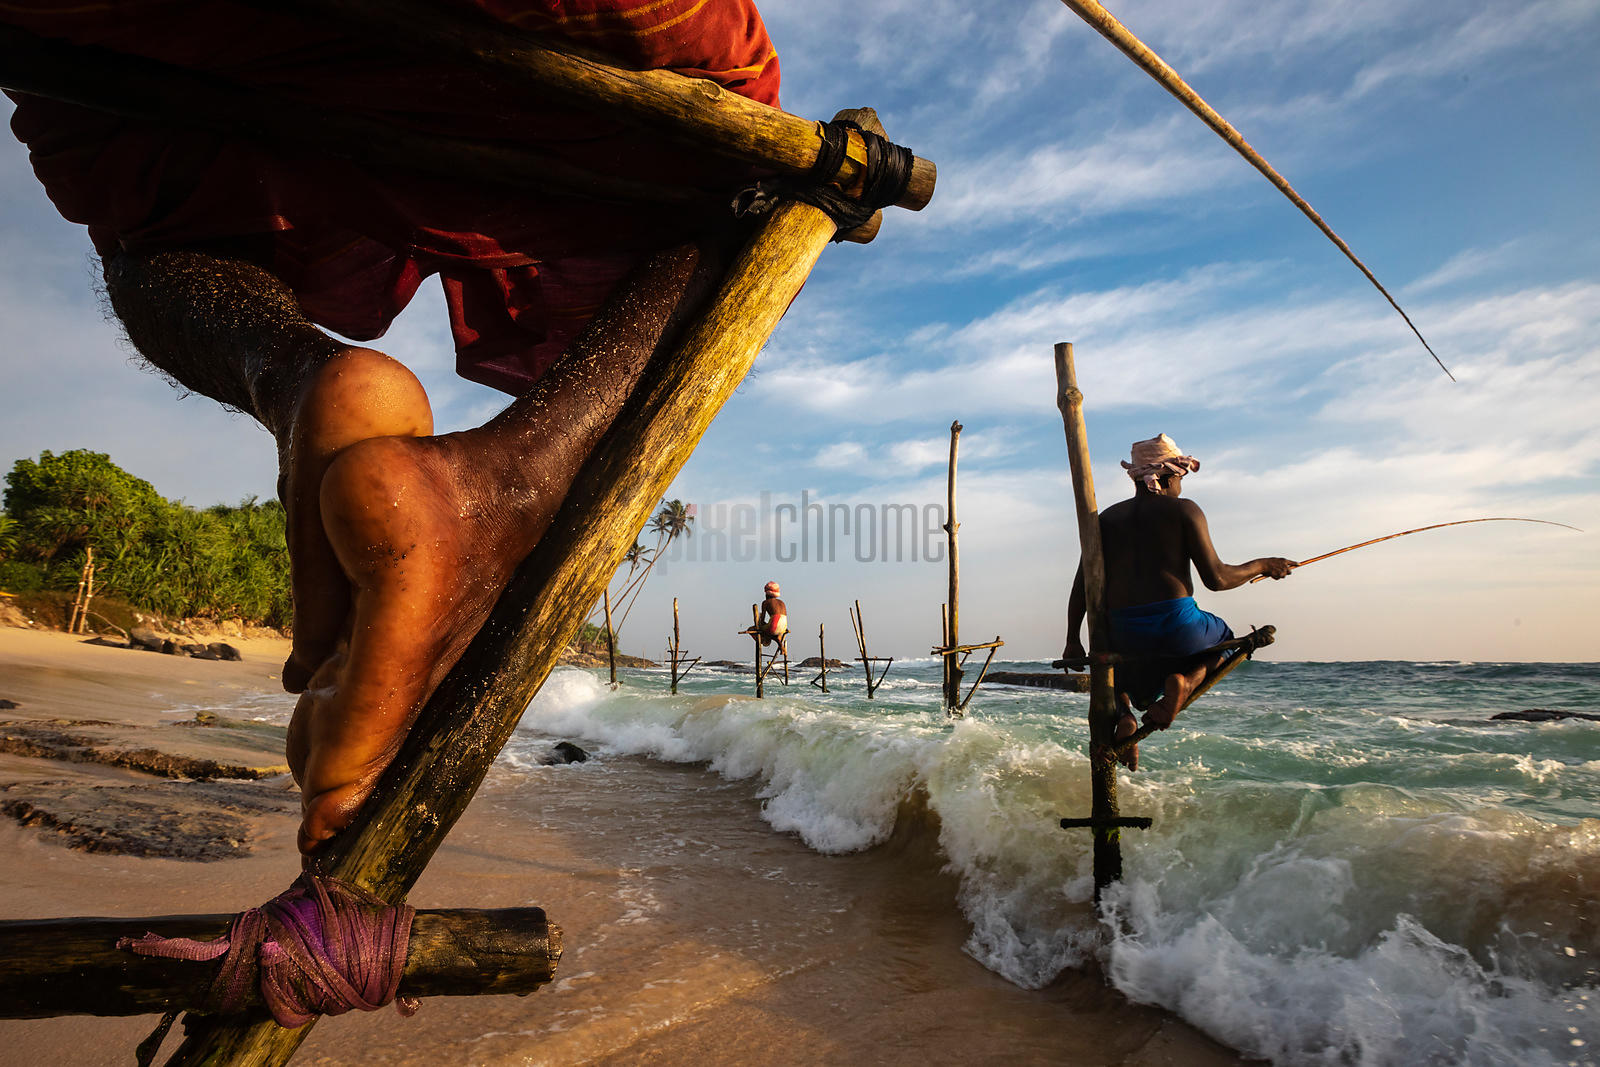 Stilt Fishermen Demonstrate the Traditional Technique for Catching Fish